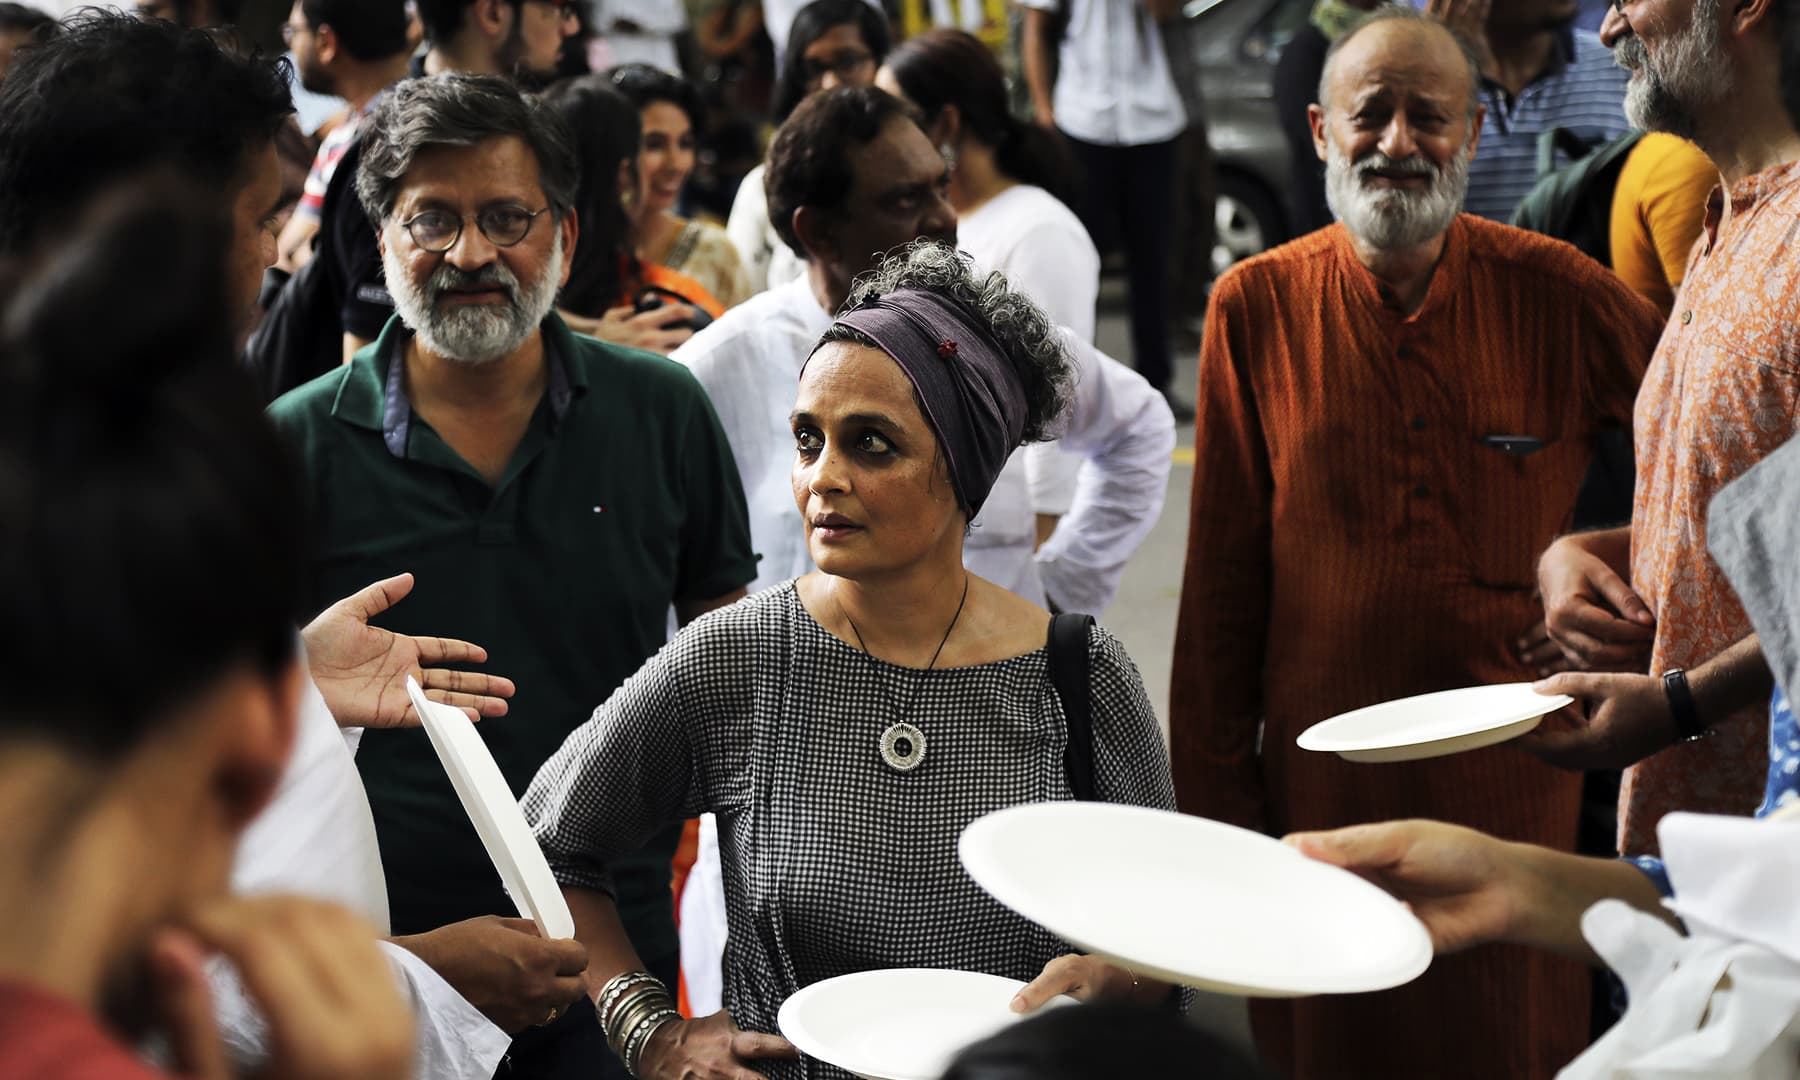 Award winner author Arundhati Roy, center, participates in a gathering of Kashmiri people residing in India.— AP